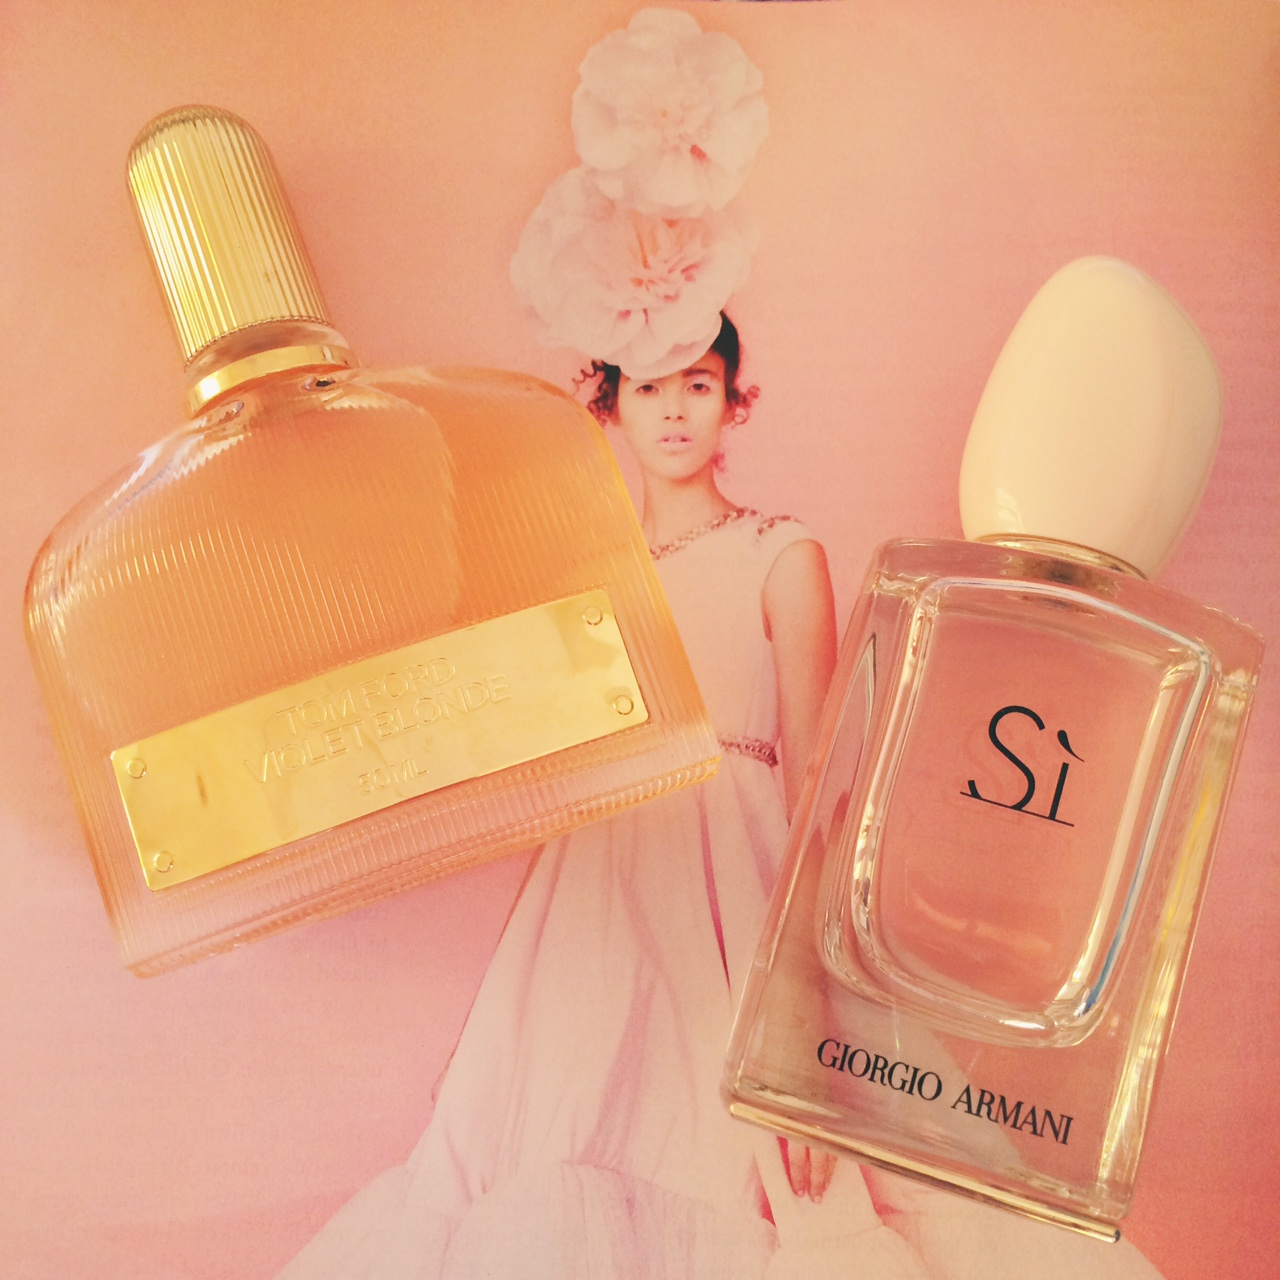 Winter fragrance - Tom Ford and Giorgio Armani | All Dolled Up